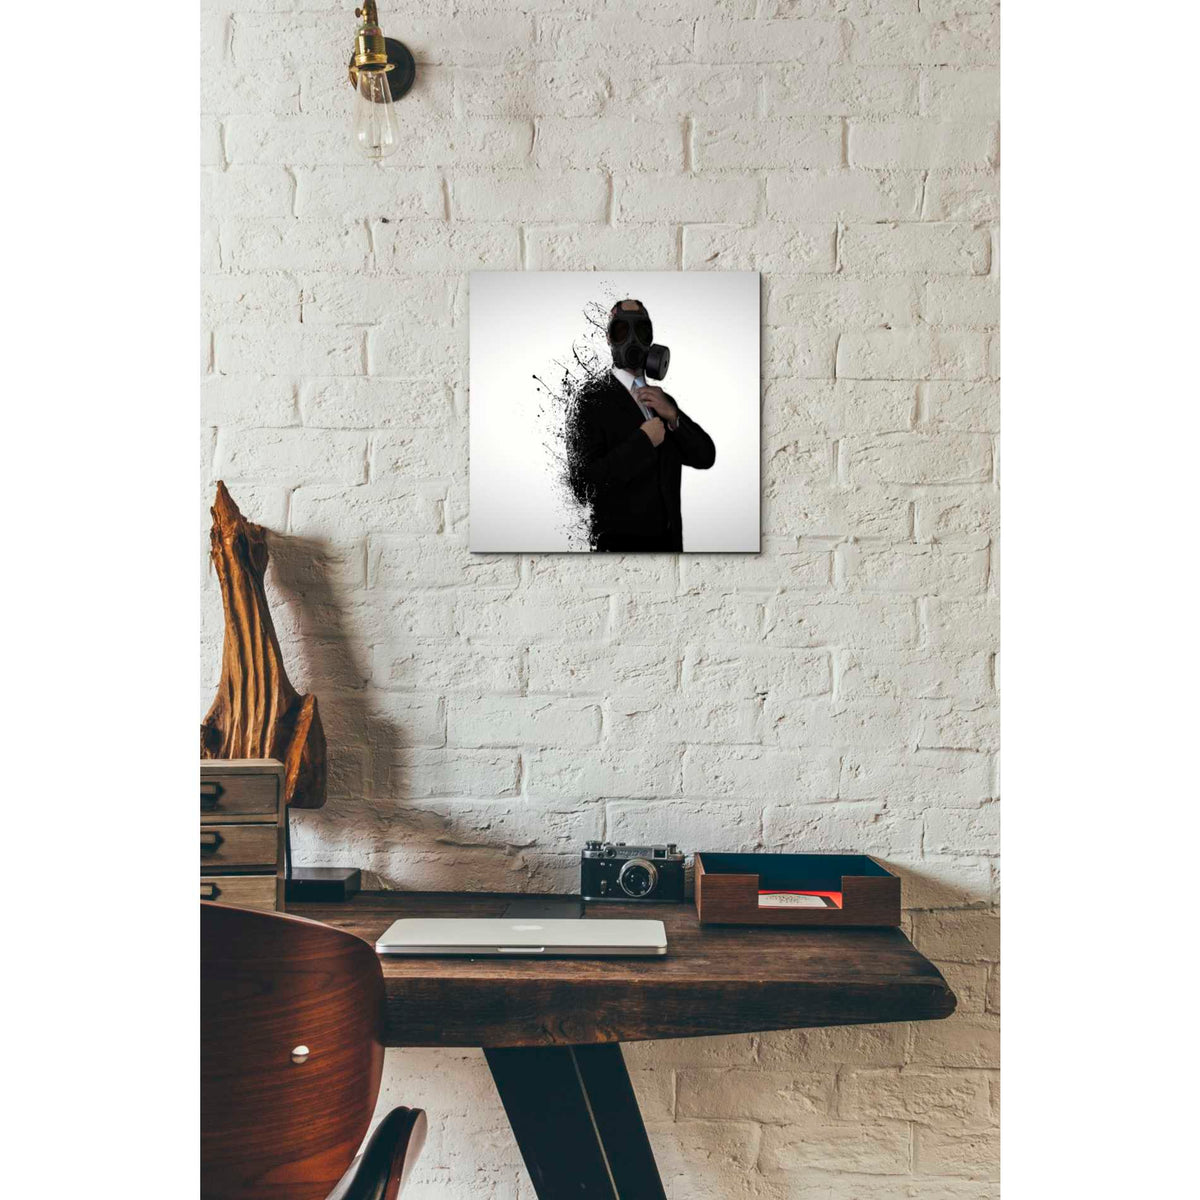 Cortesi Home 'Dissolution of Man' by Nicklas Gustafsson, Canvas Wall Art,12 x 12